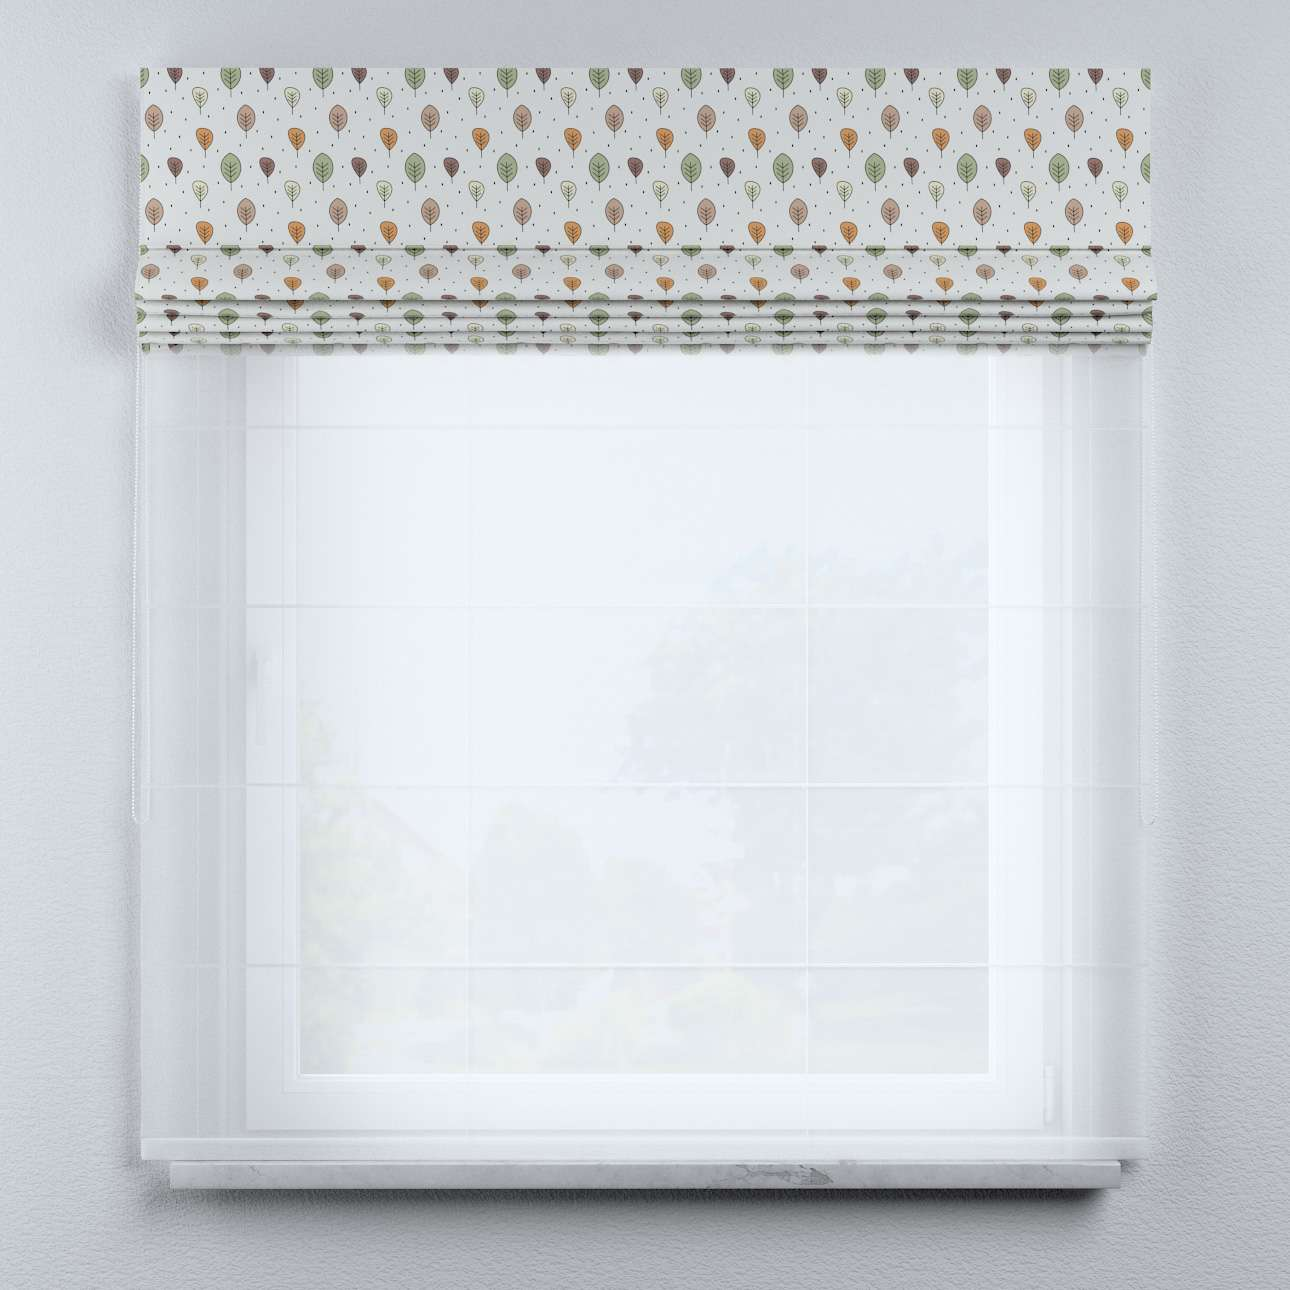 Voile and fabric roman blind (DUO II) in collection Magic Collection, fabric: 500-09